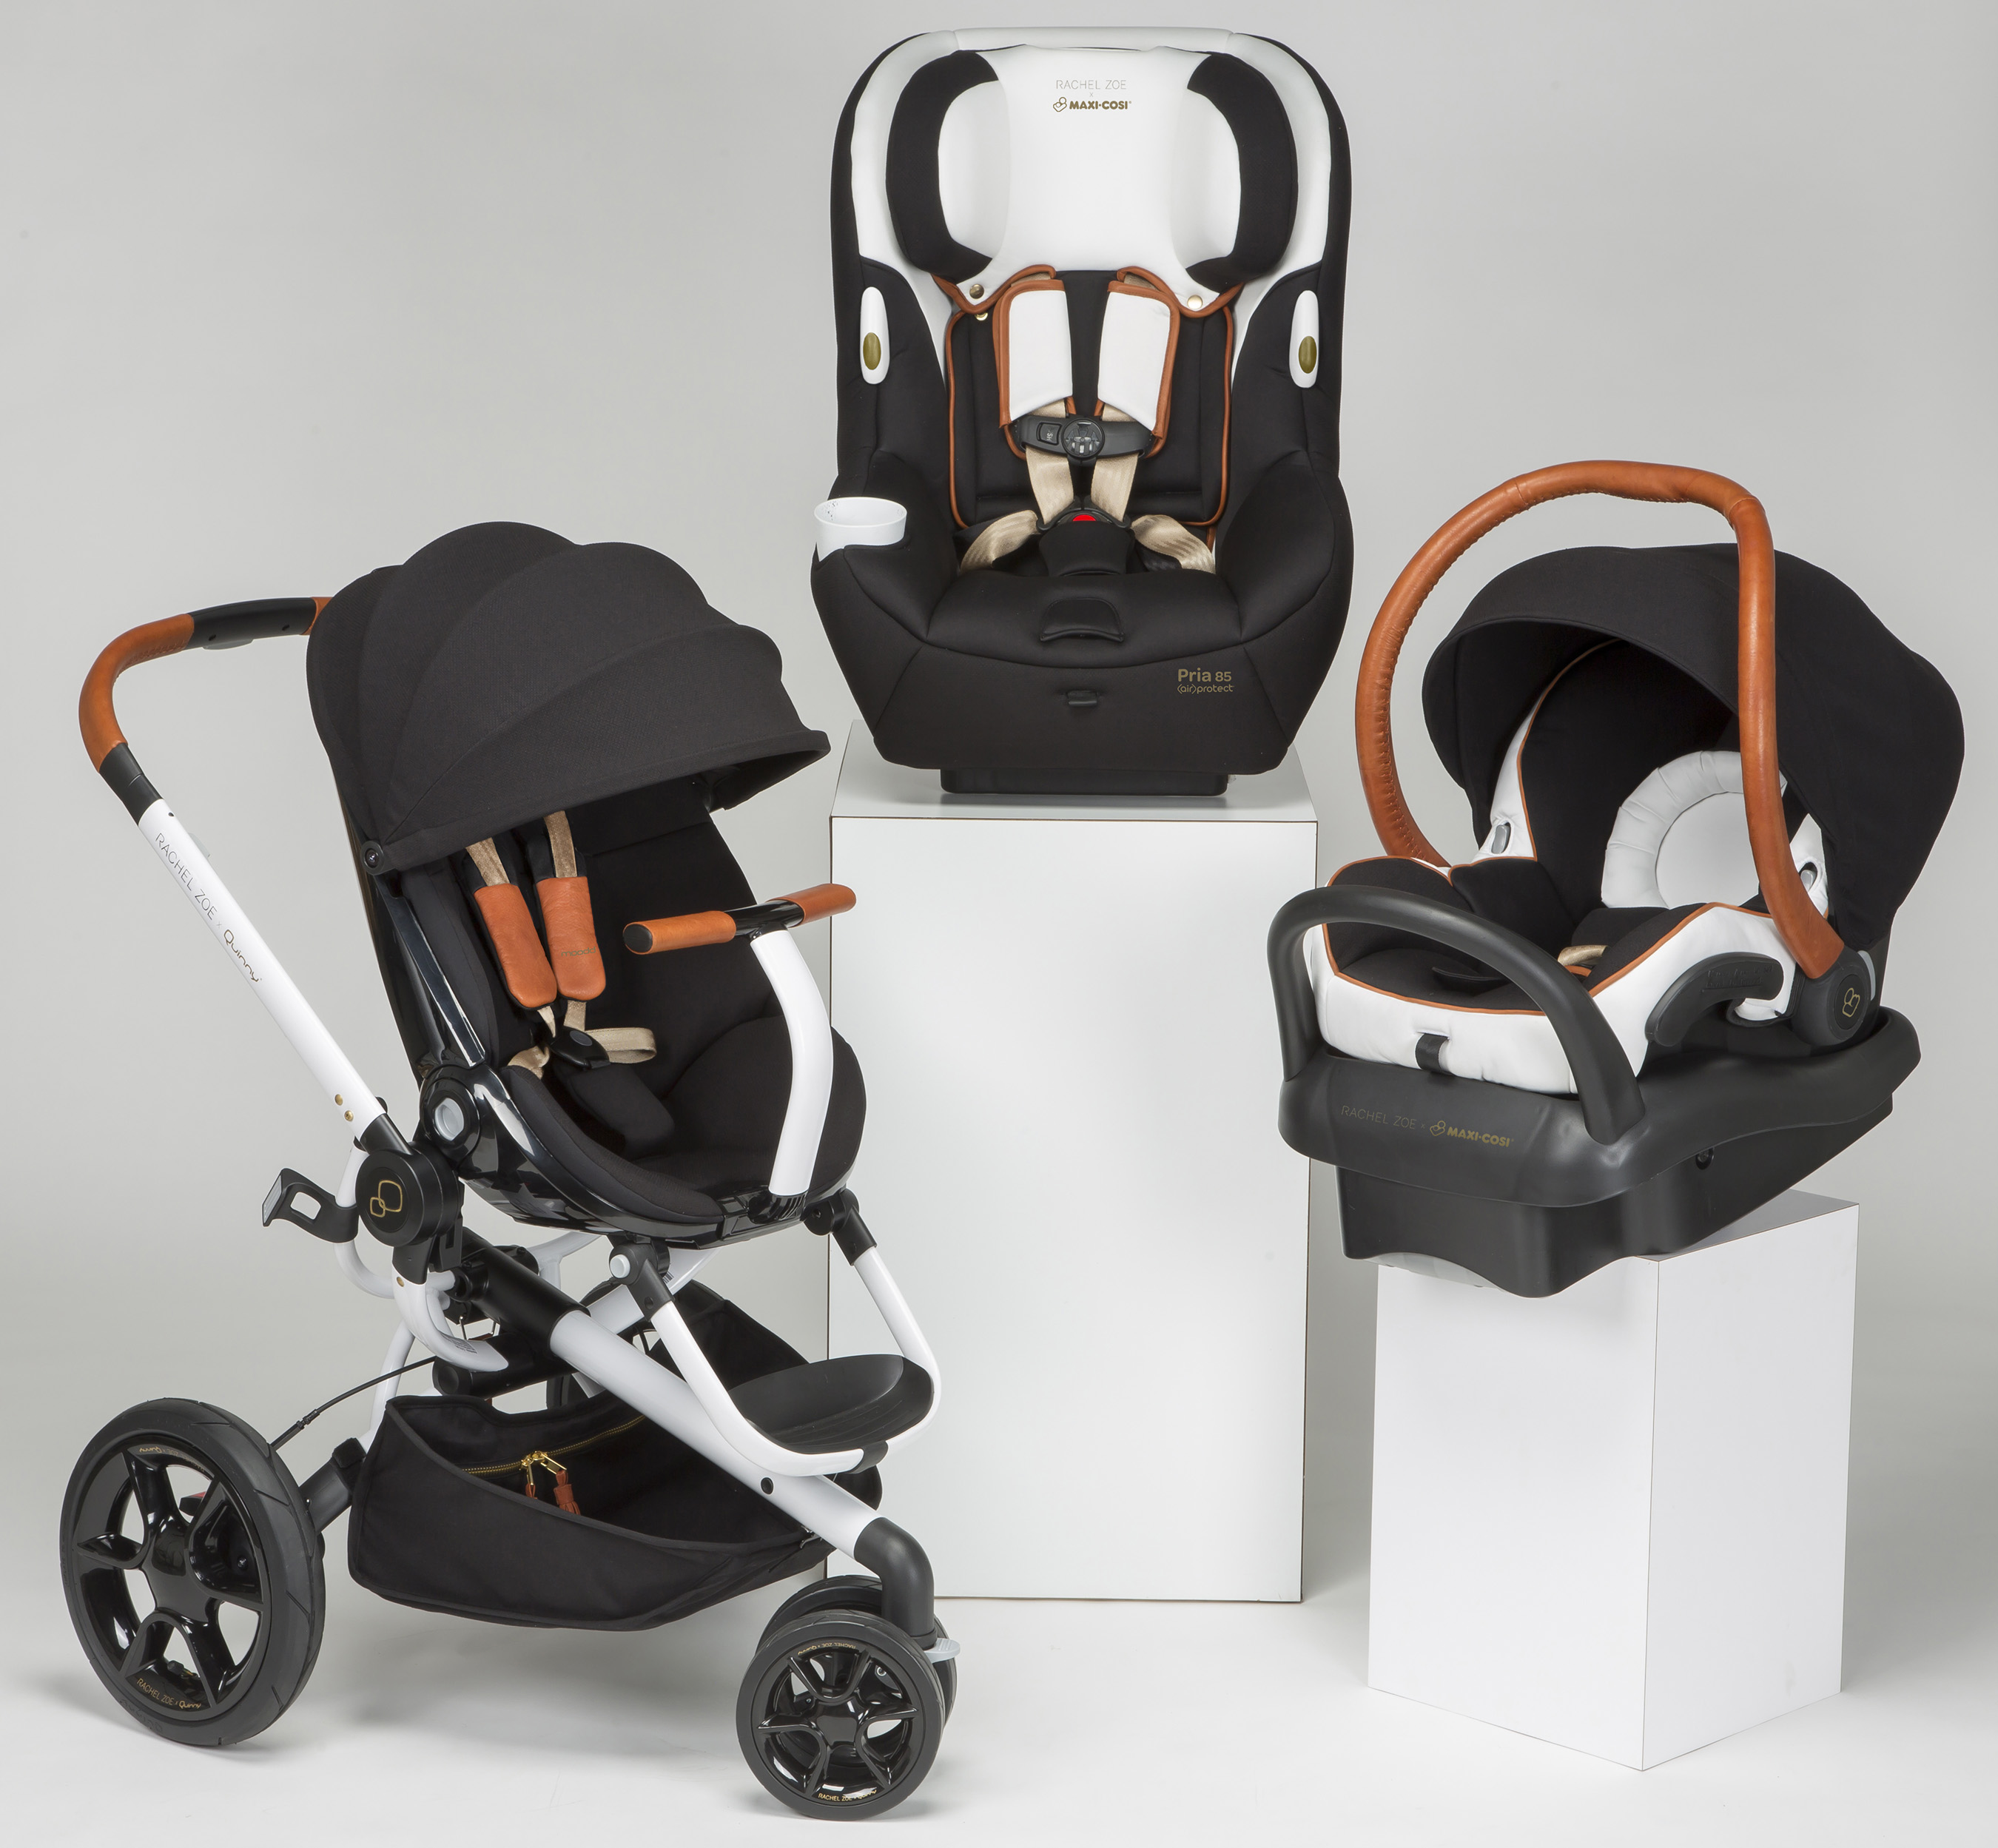 RACHEL ZOE x QUINNY AND MAXI-COSI COLLECTION POISED TO MAKE A ...